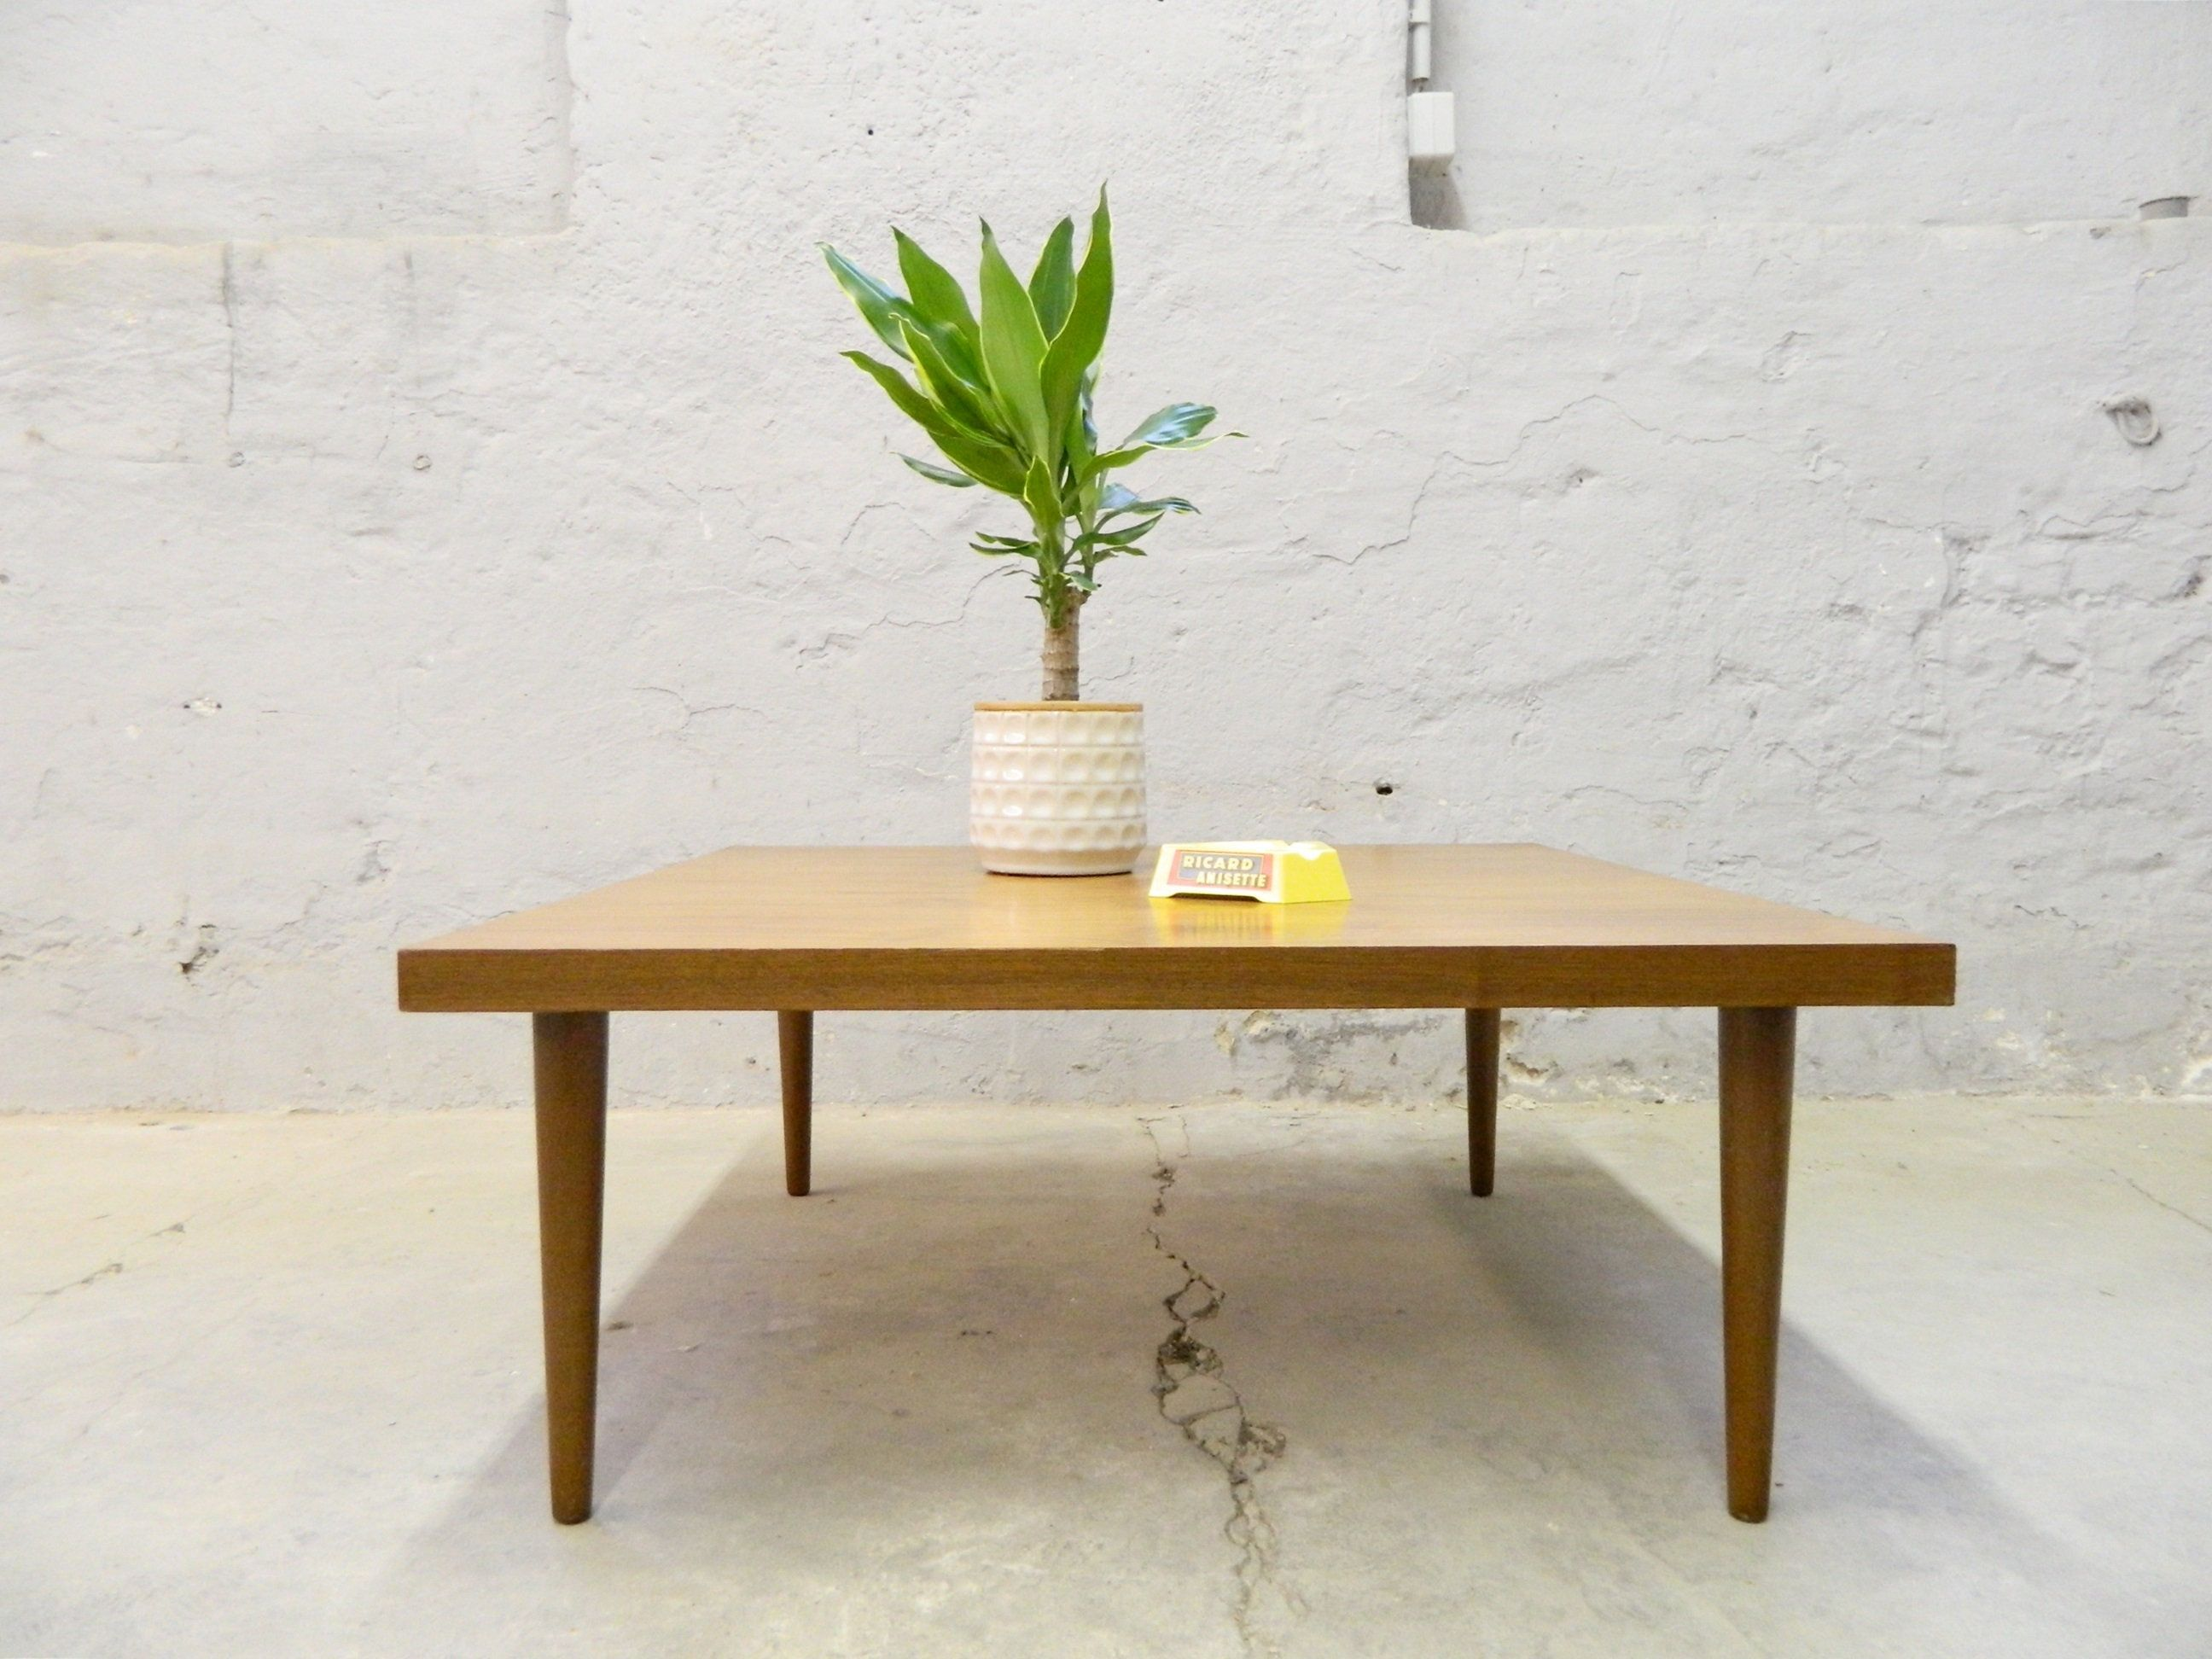 Sixties Coffee Table Living Room Table Table Wood Vintage Sofa Table Coffee Table 60 Wooden - The Wood Times Couchtisch